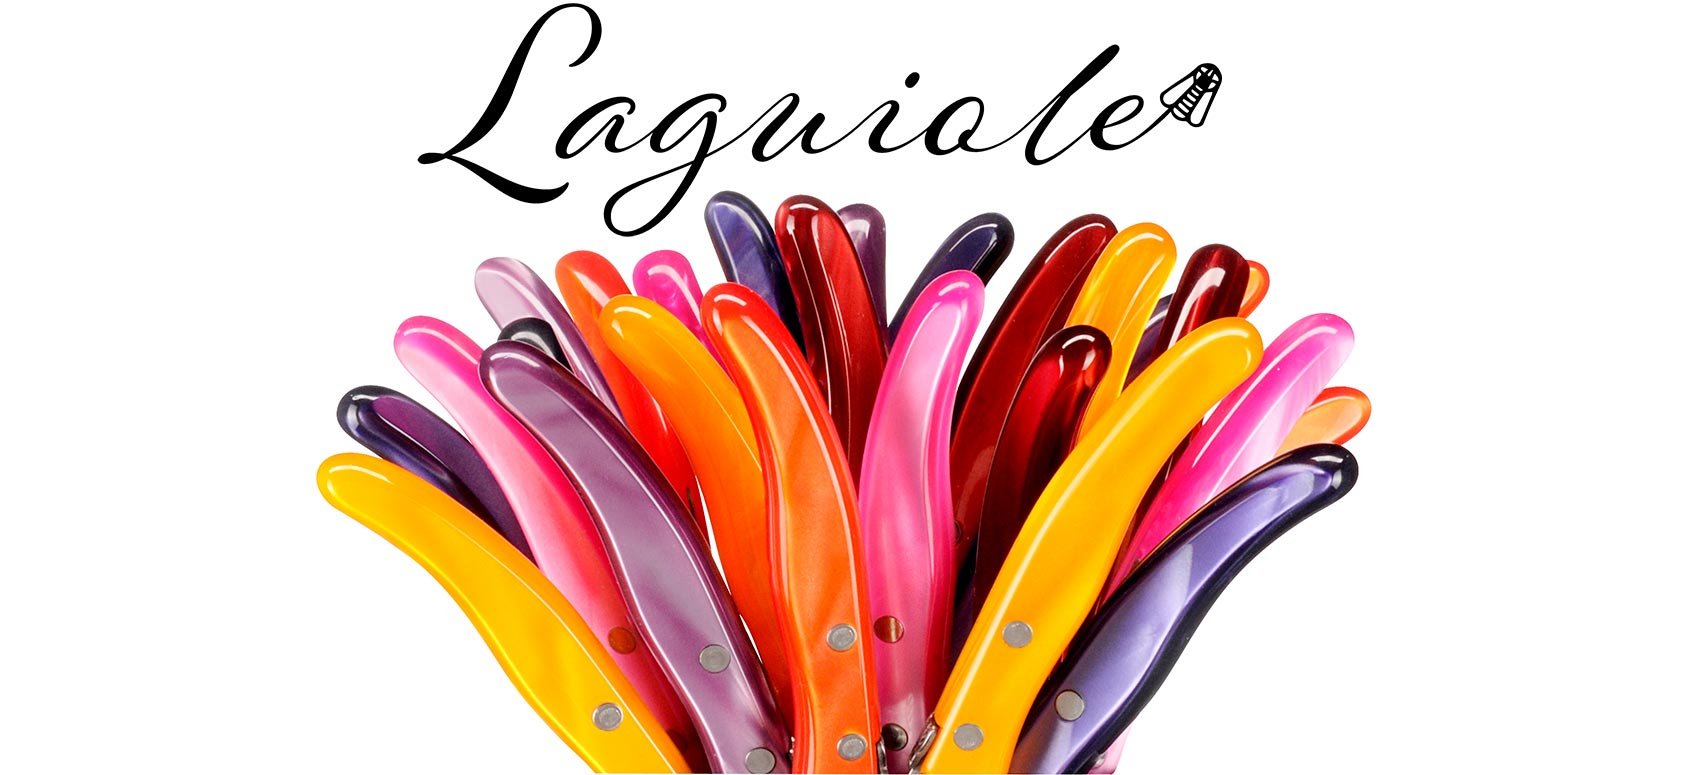 Laguiole French knives, forks, cutlery